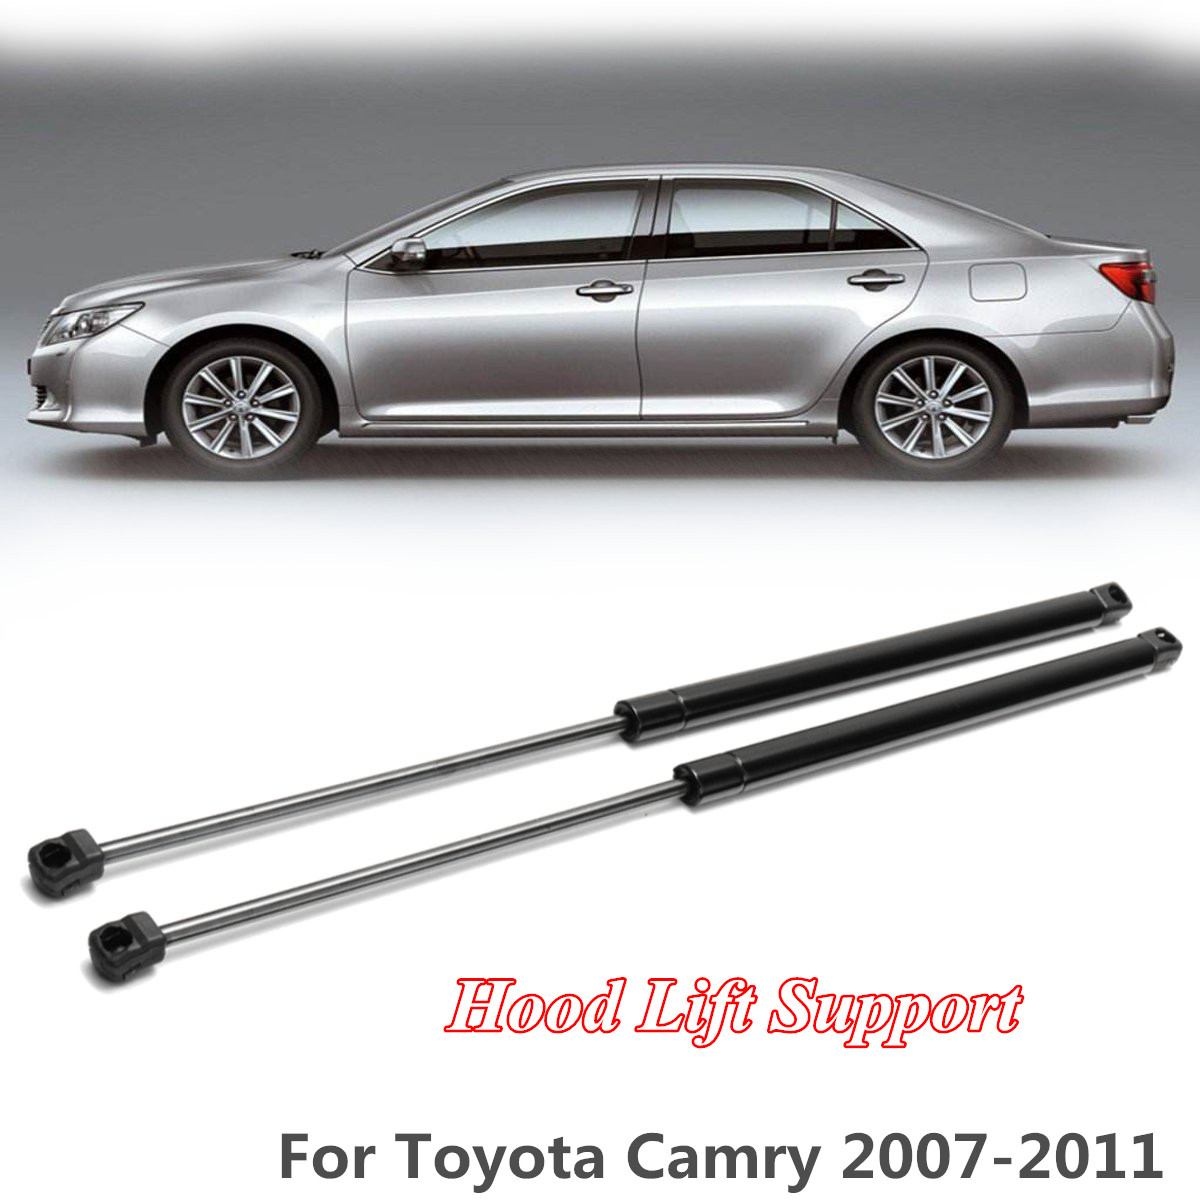 2pcs 720mm Hood Gas Lift Support Shock Strut Damper Arm 29024 For 2007 Toyota Camry Hybrid Fuse Box 2011 In Bars From Automobiles Motorcycles On